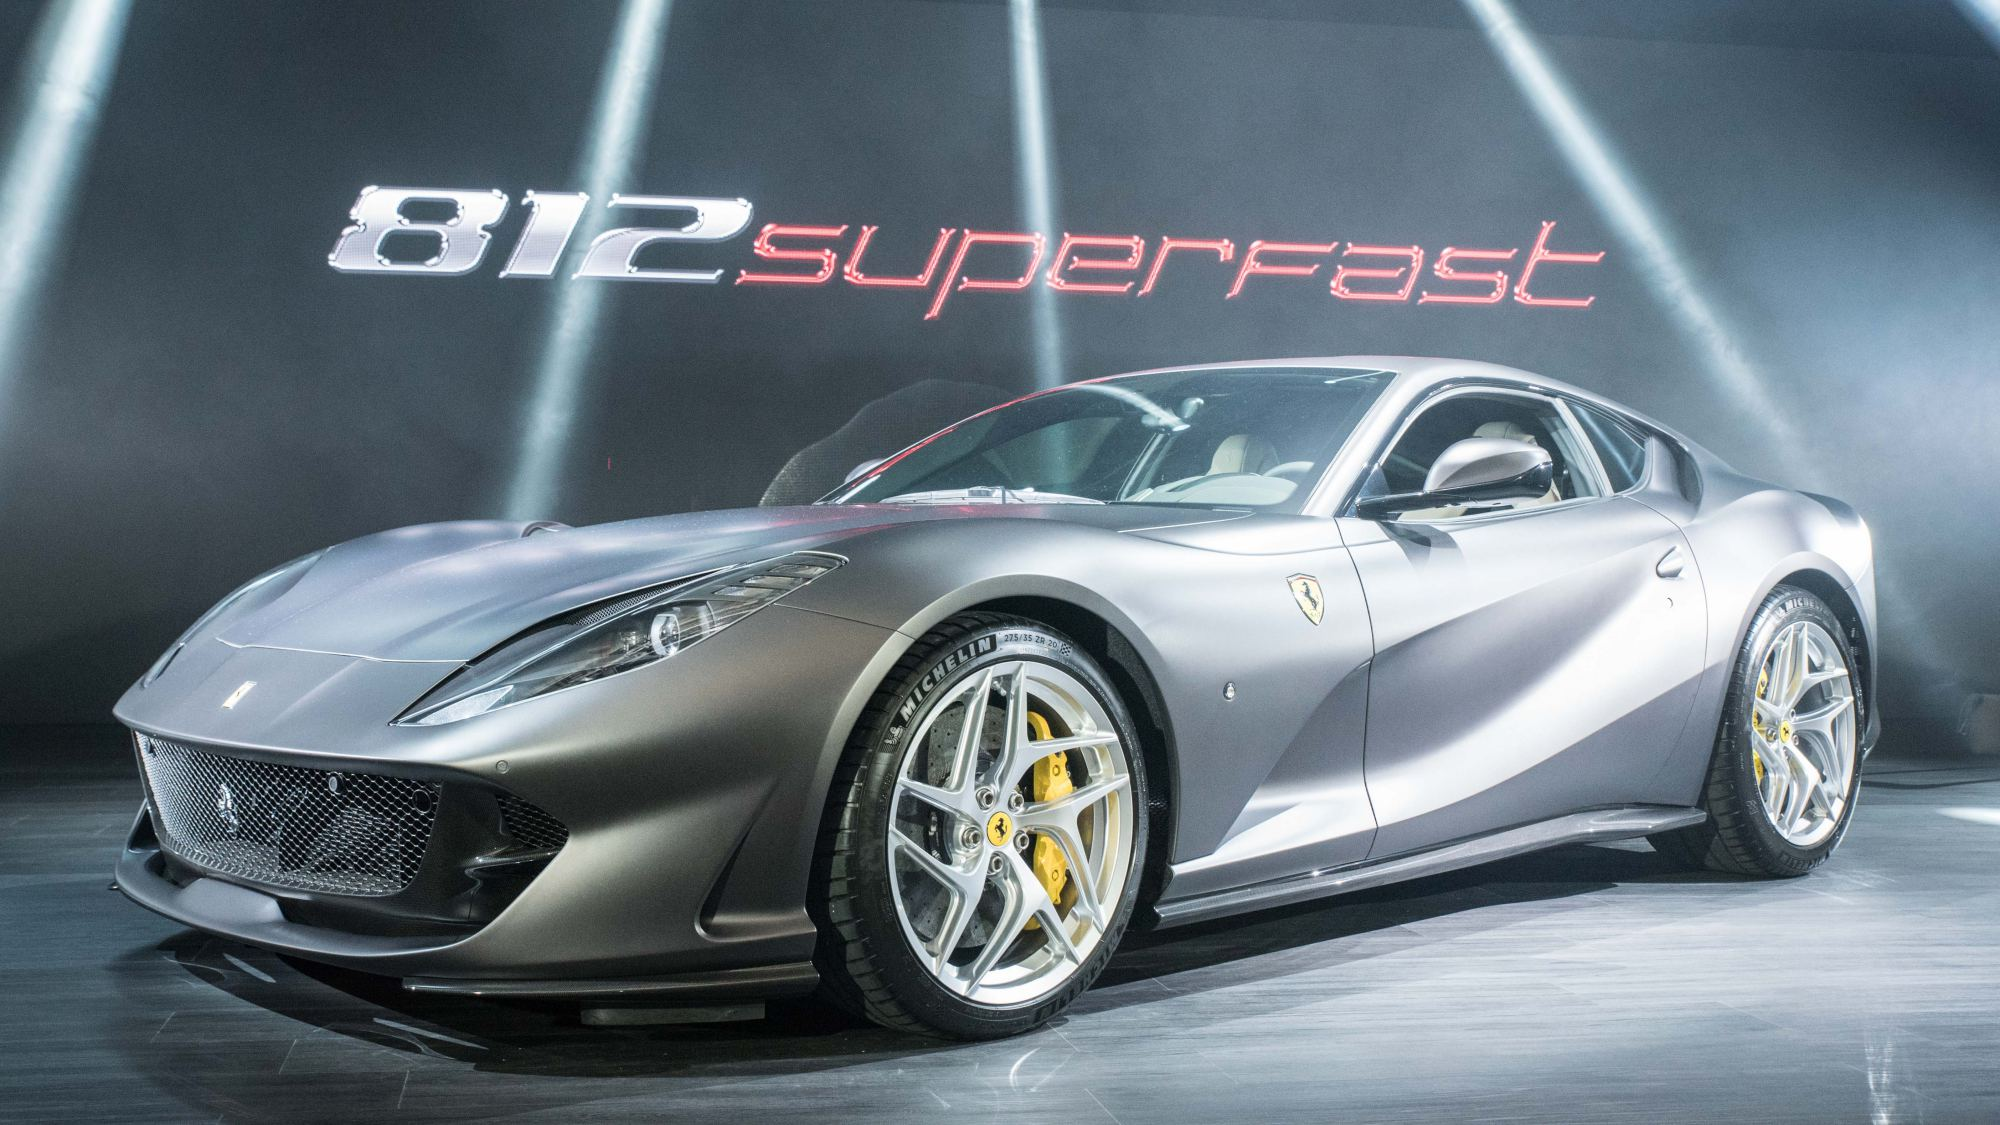 News Ferrari 812 Superfast Touches Down In Melbourne